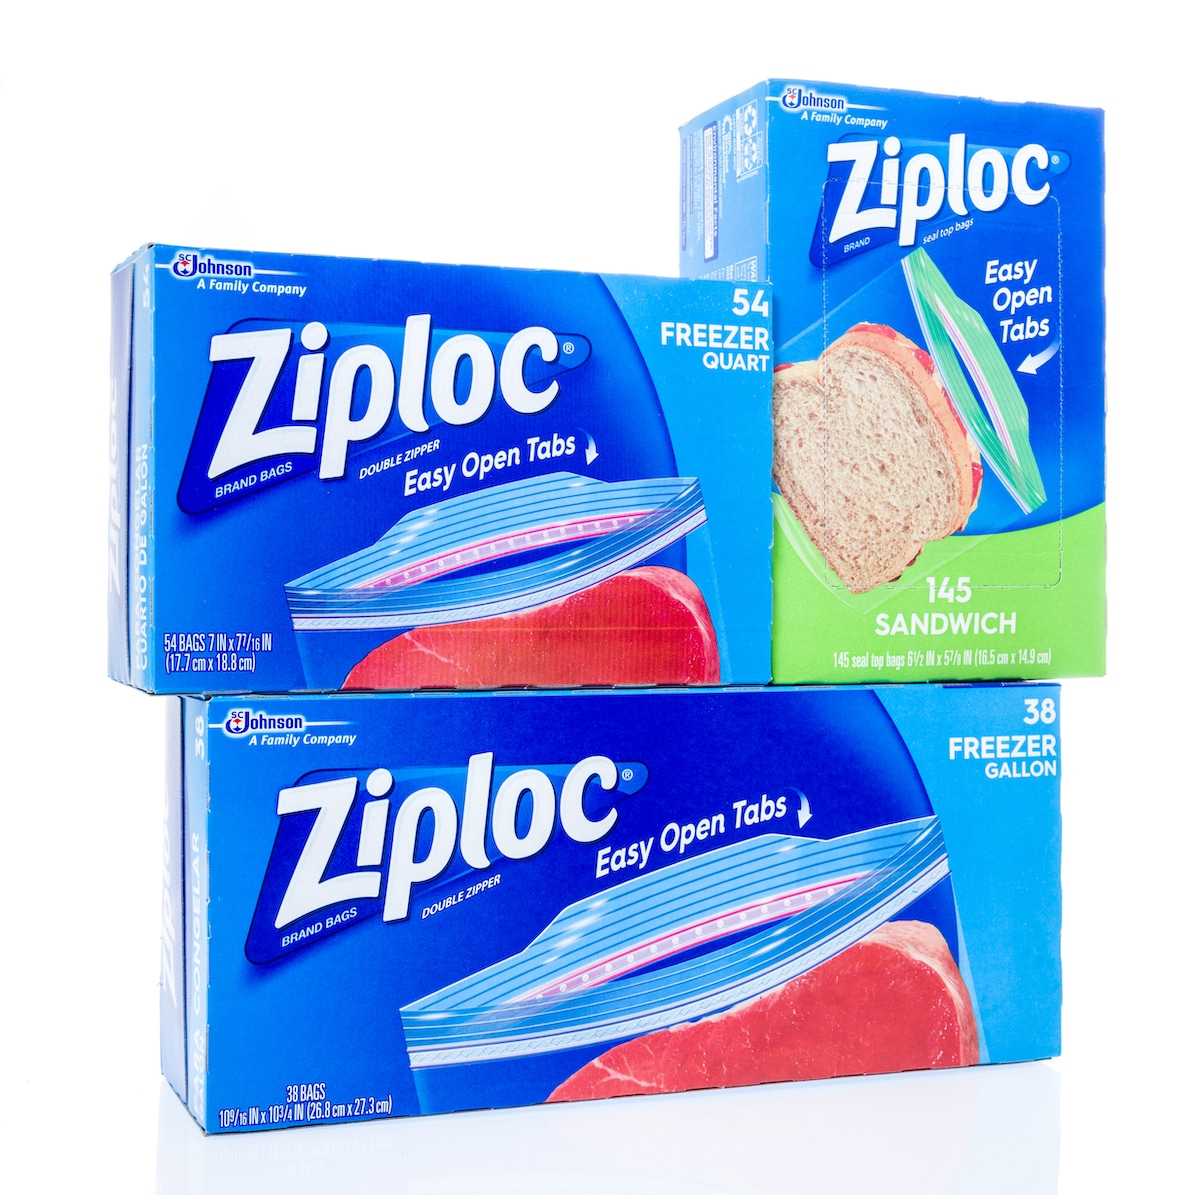 A picture of ziploc bags